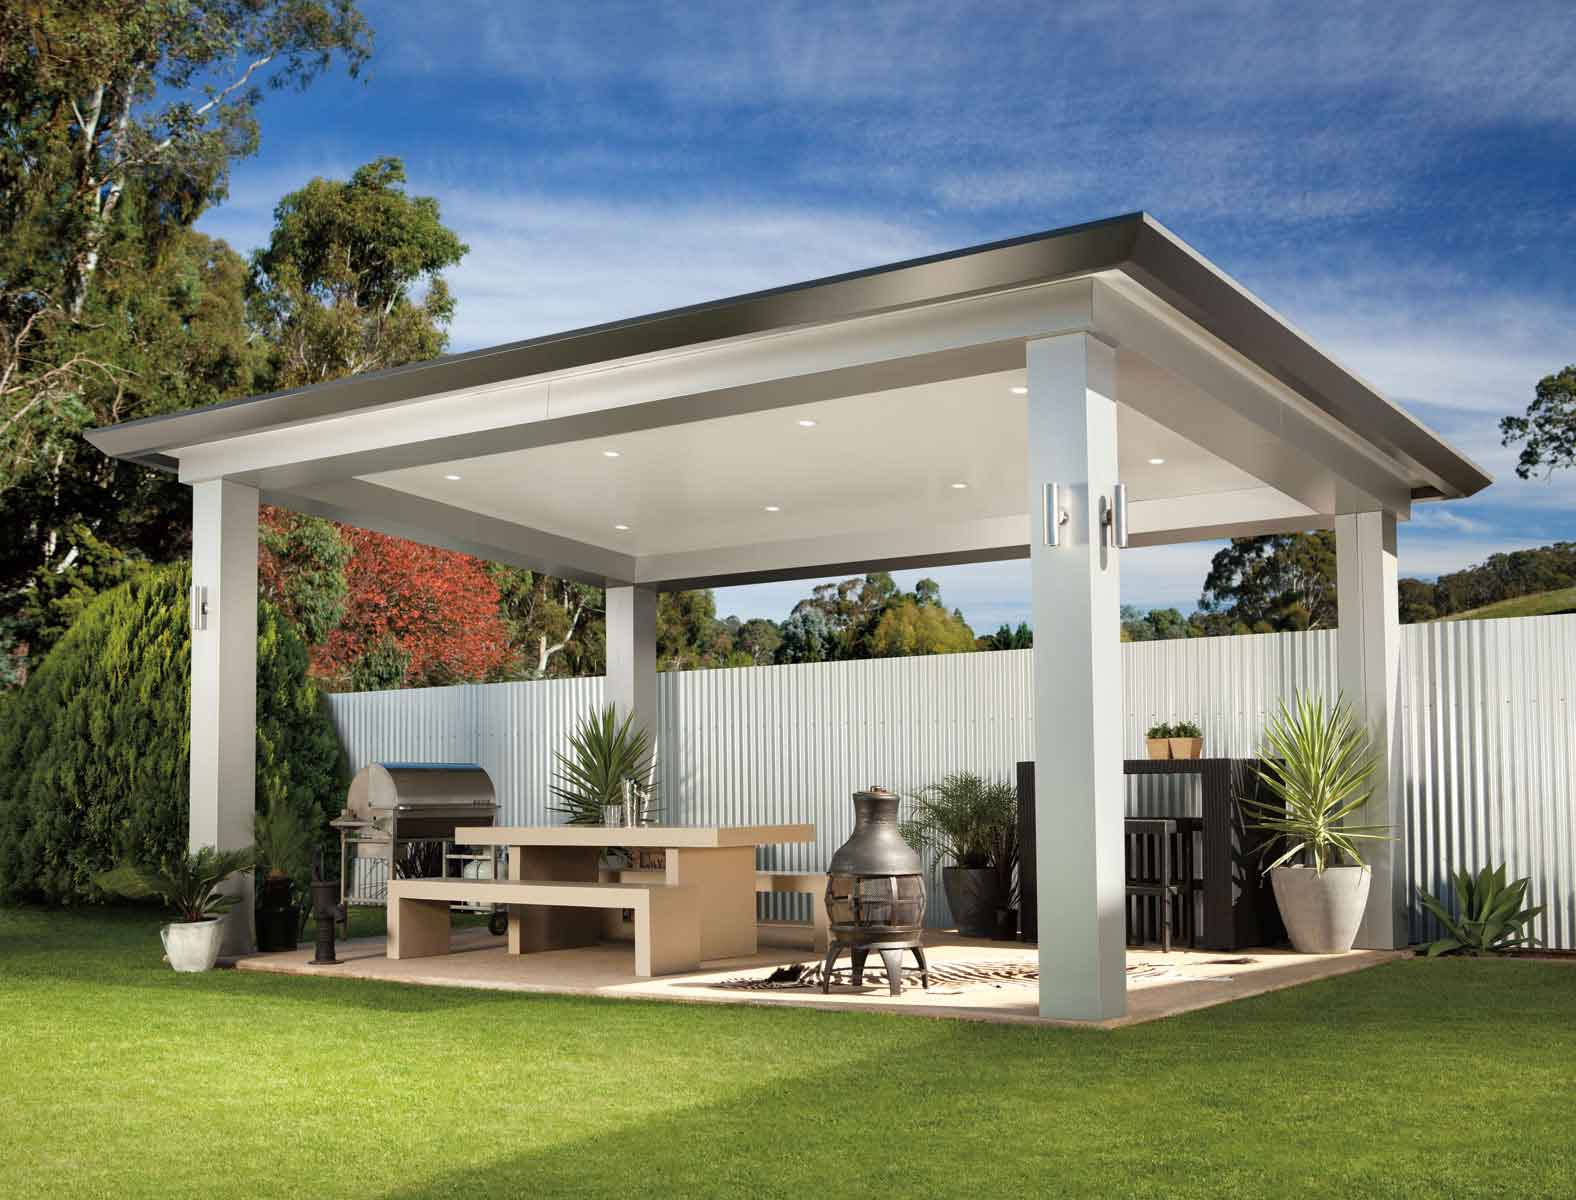 Melbourne Pergolas, Patios & Carport Installers - Outdoor